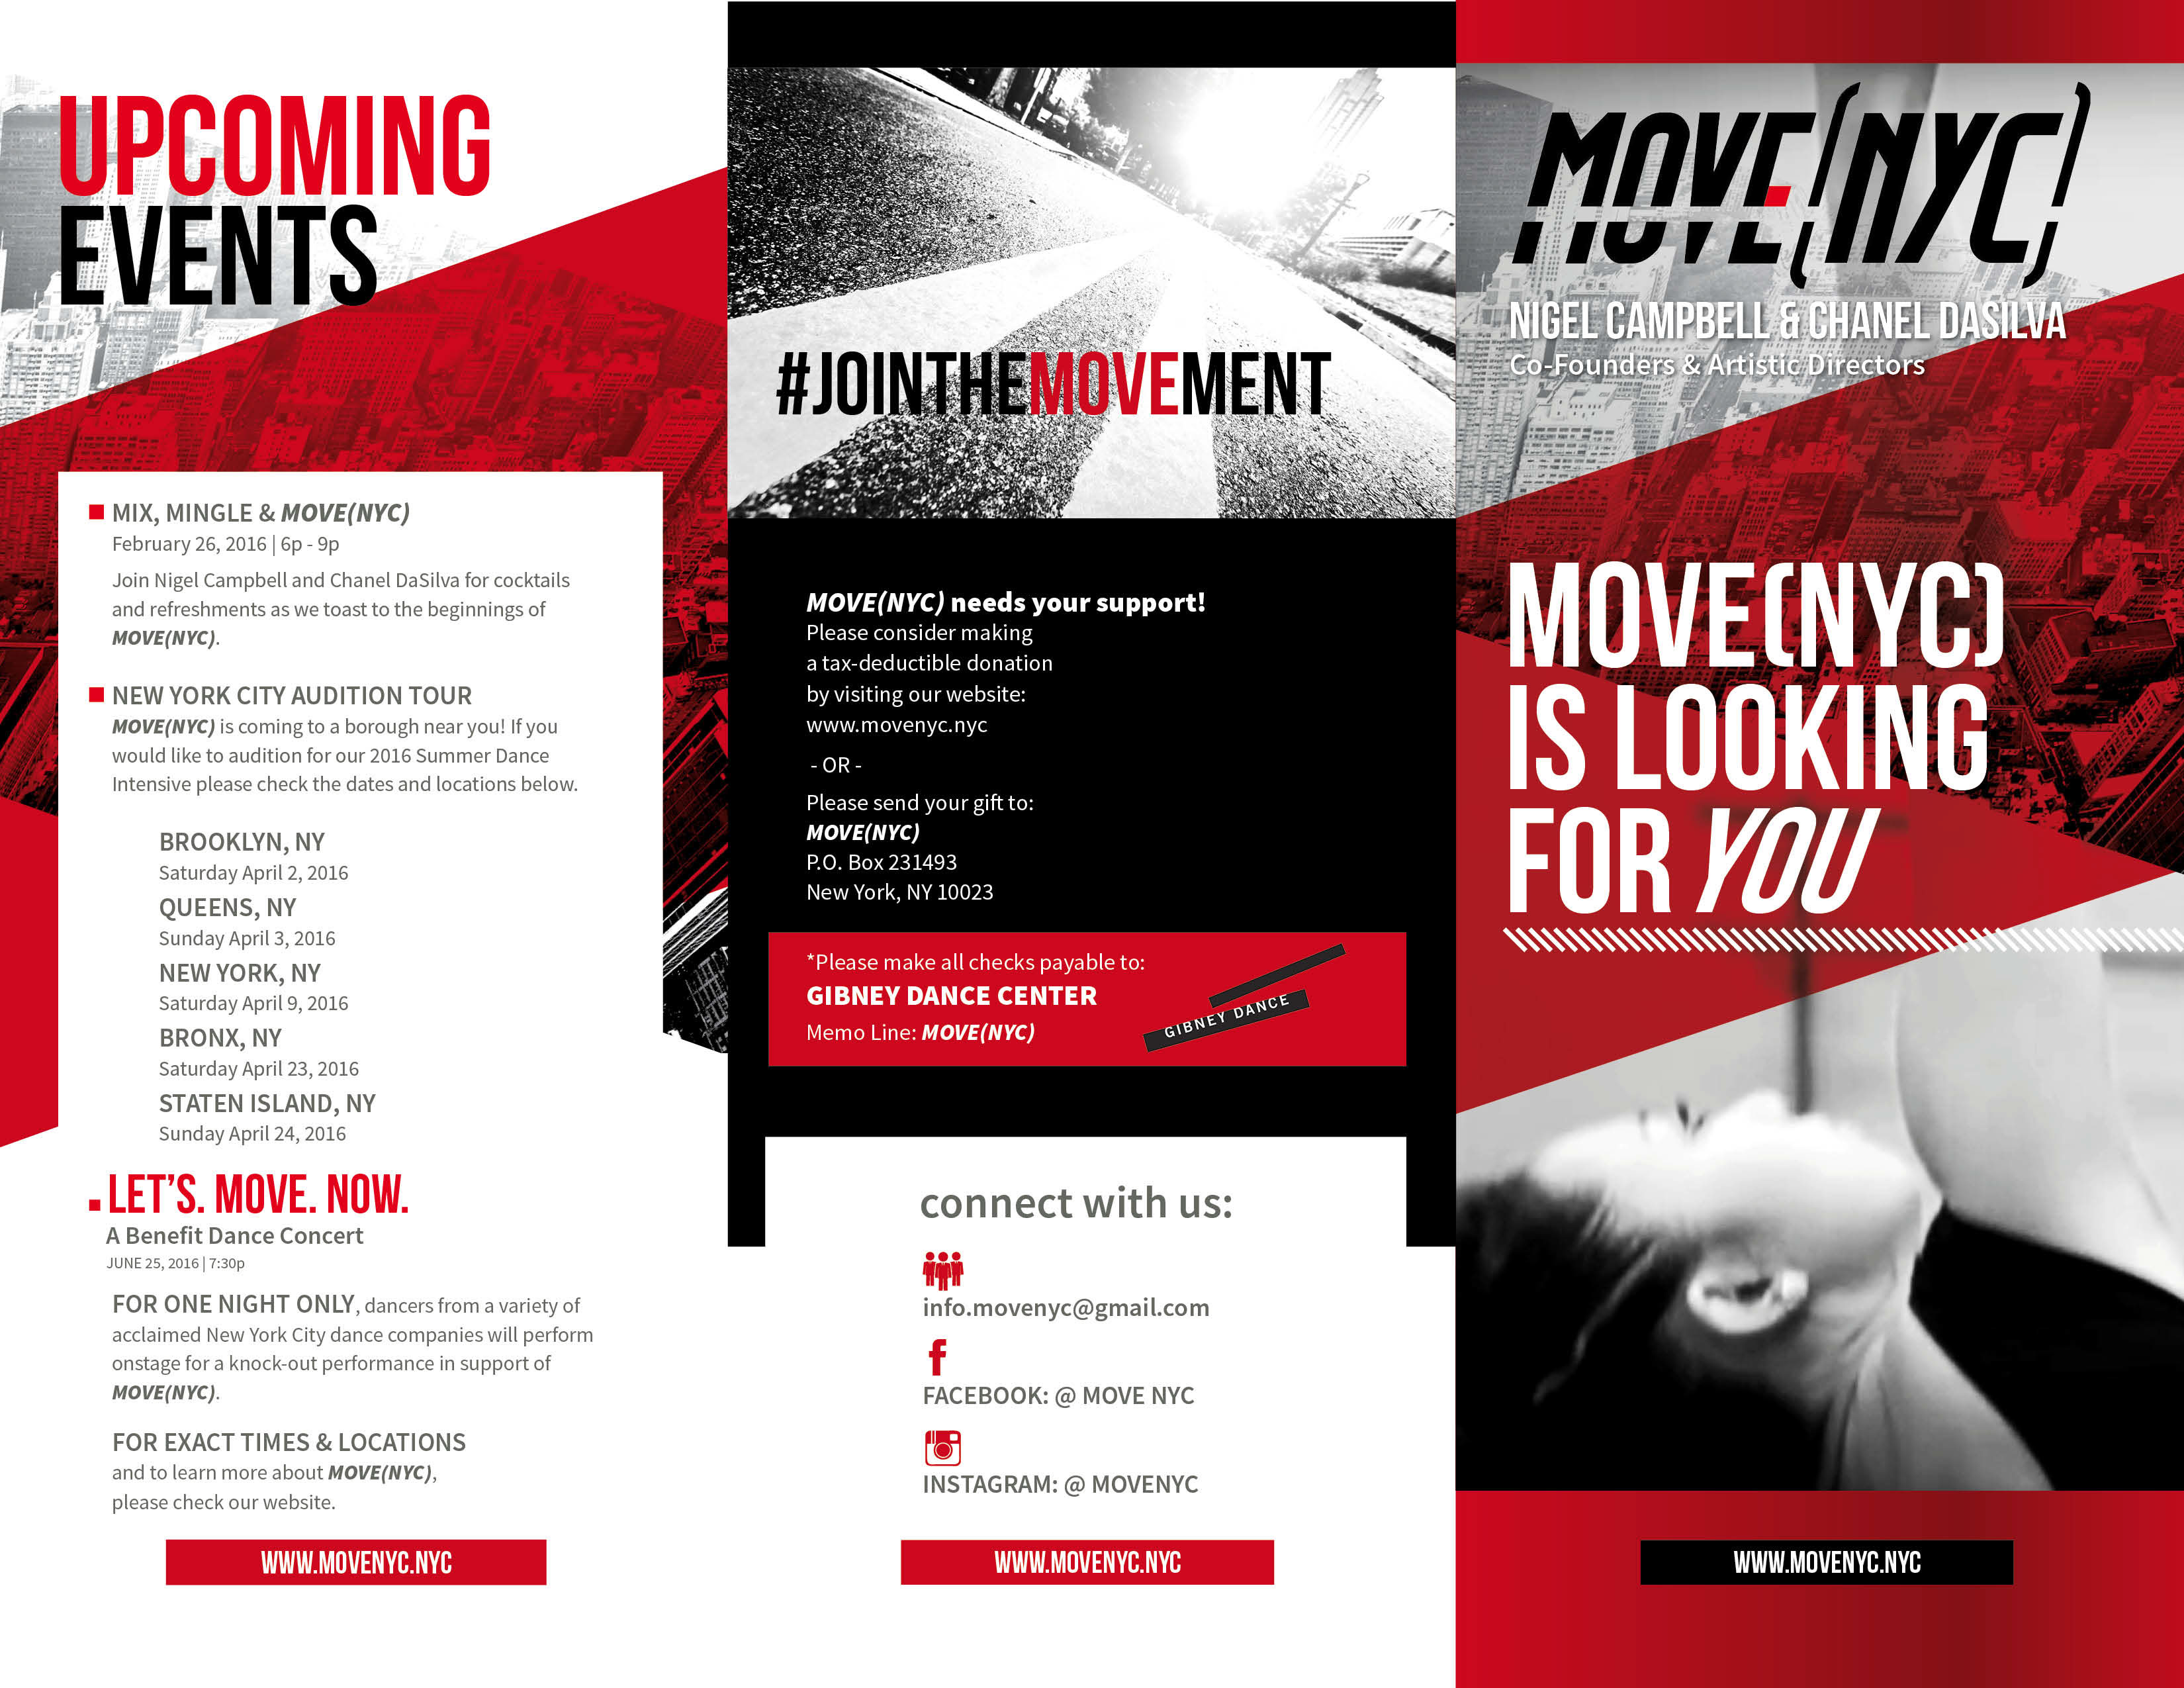 Caitlin Lewis - MOVE(NYC): Marketing Campaign